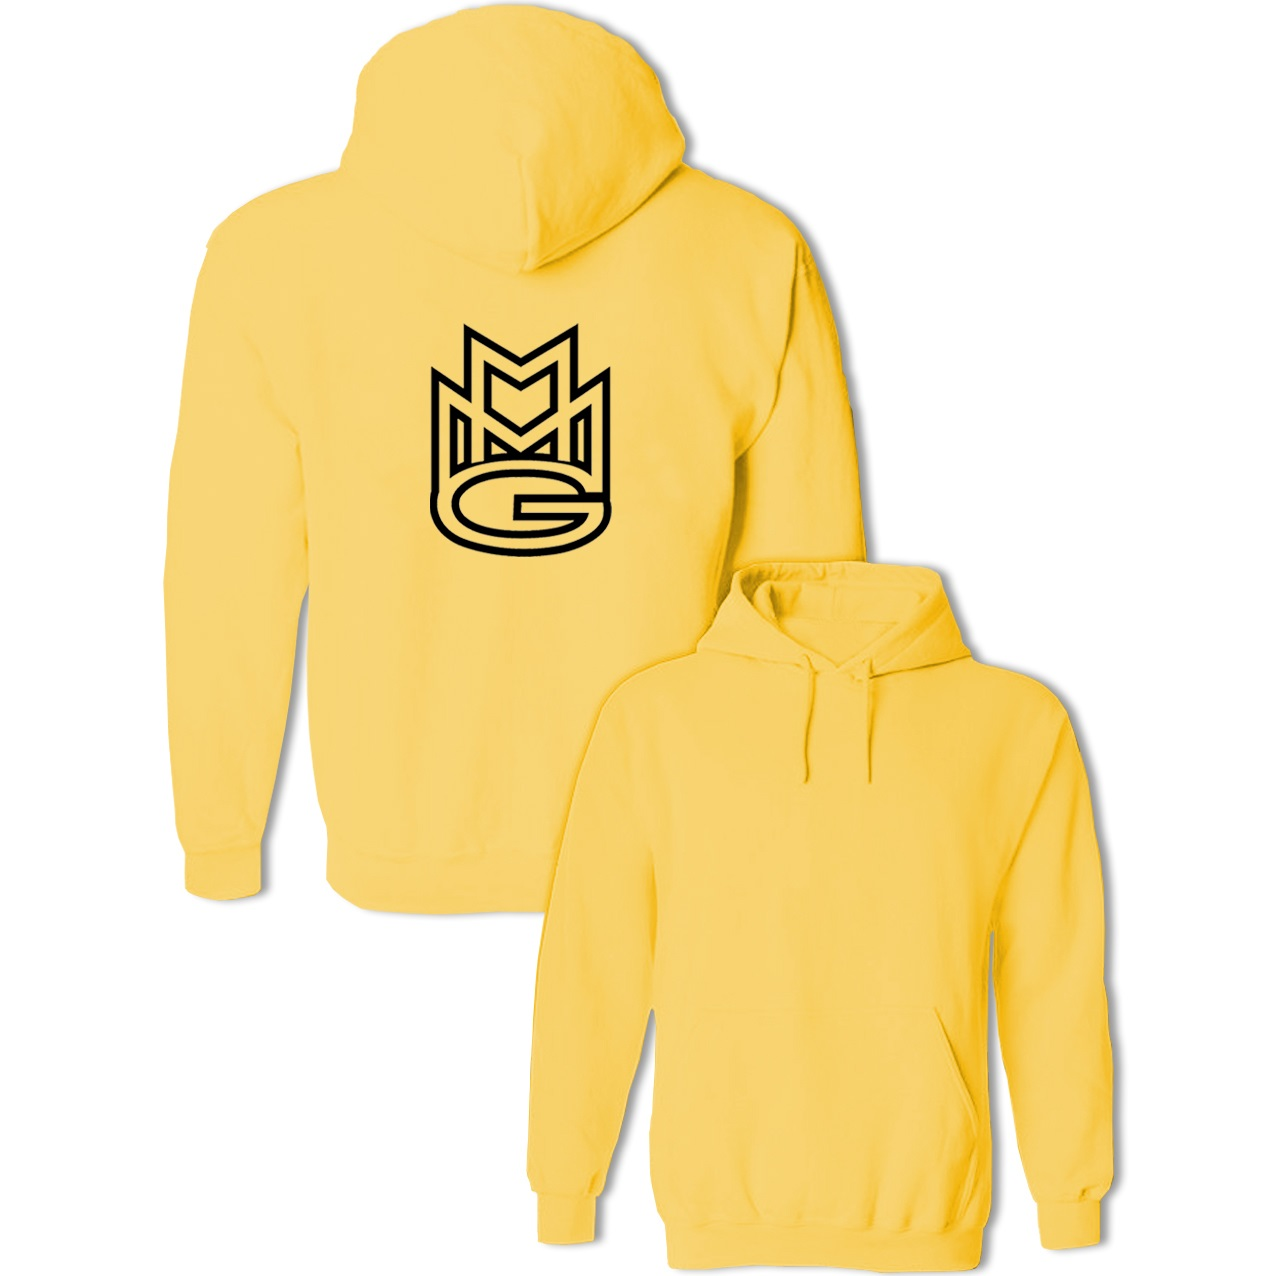 MMG Maybach Hip Hop Music Group Rick Ross Design Hoodies Mens Womens Boys Girls Sweatshirts Pullovers Fashion Unisex Jackets